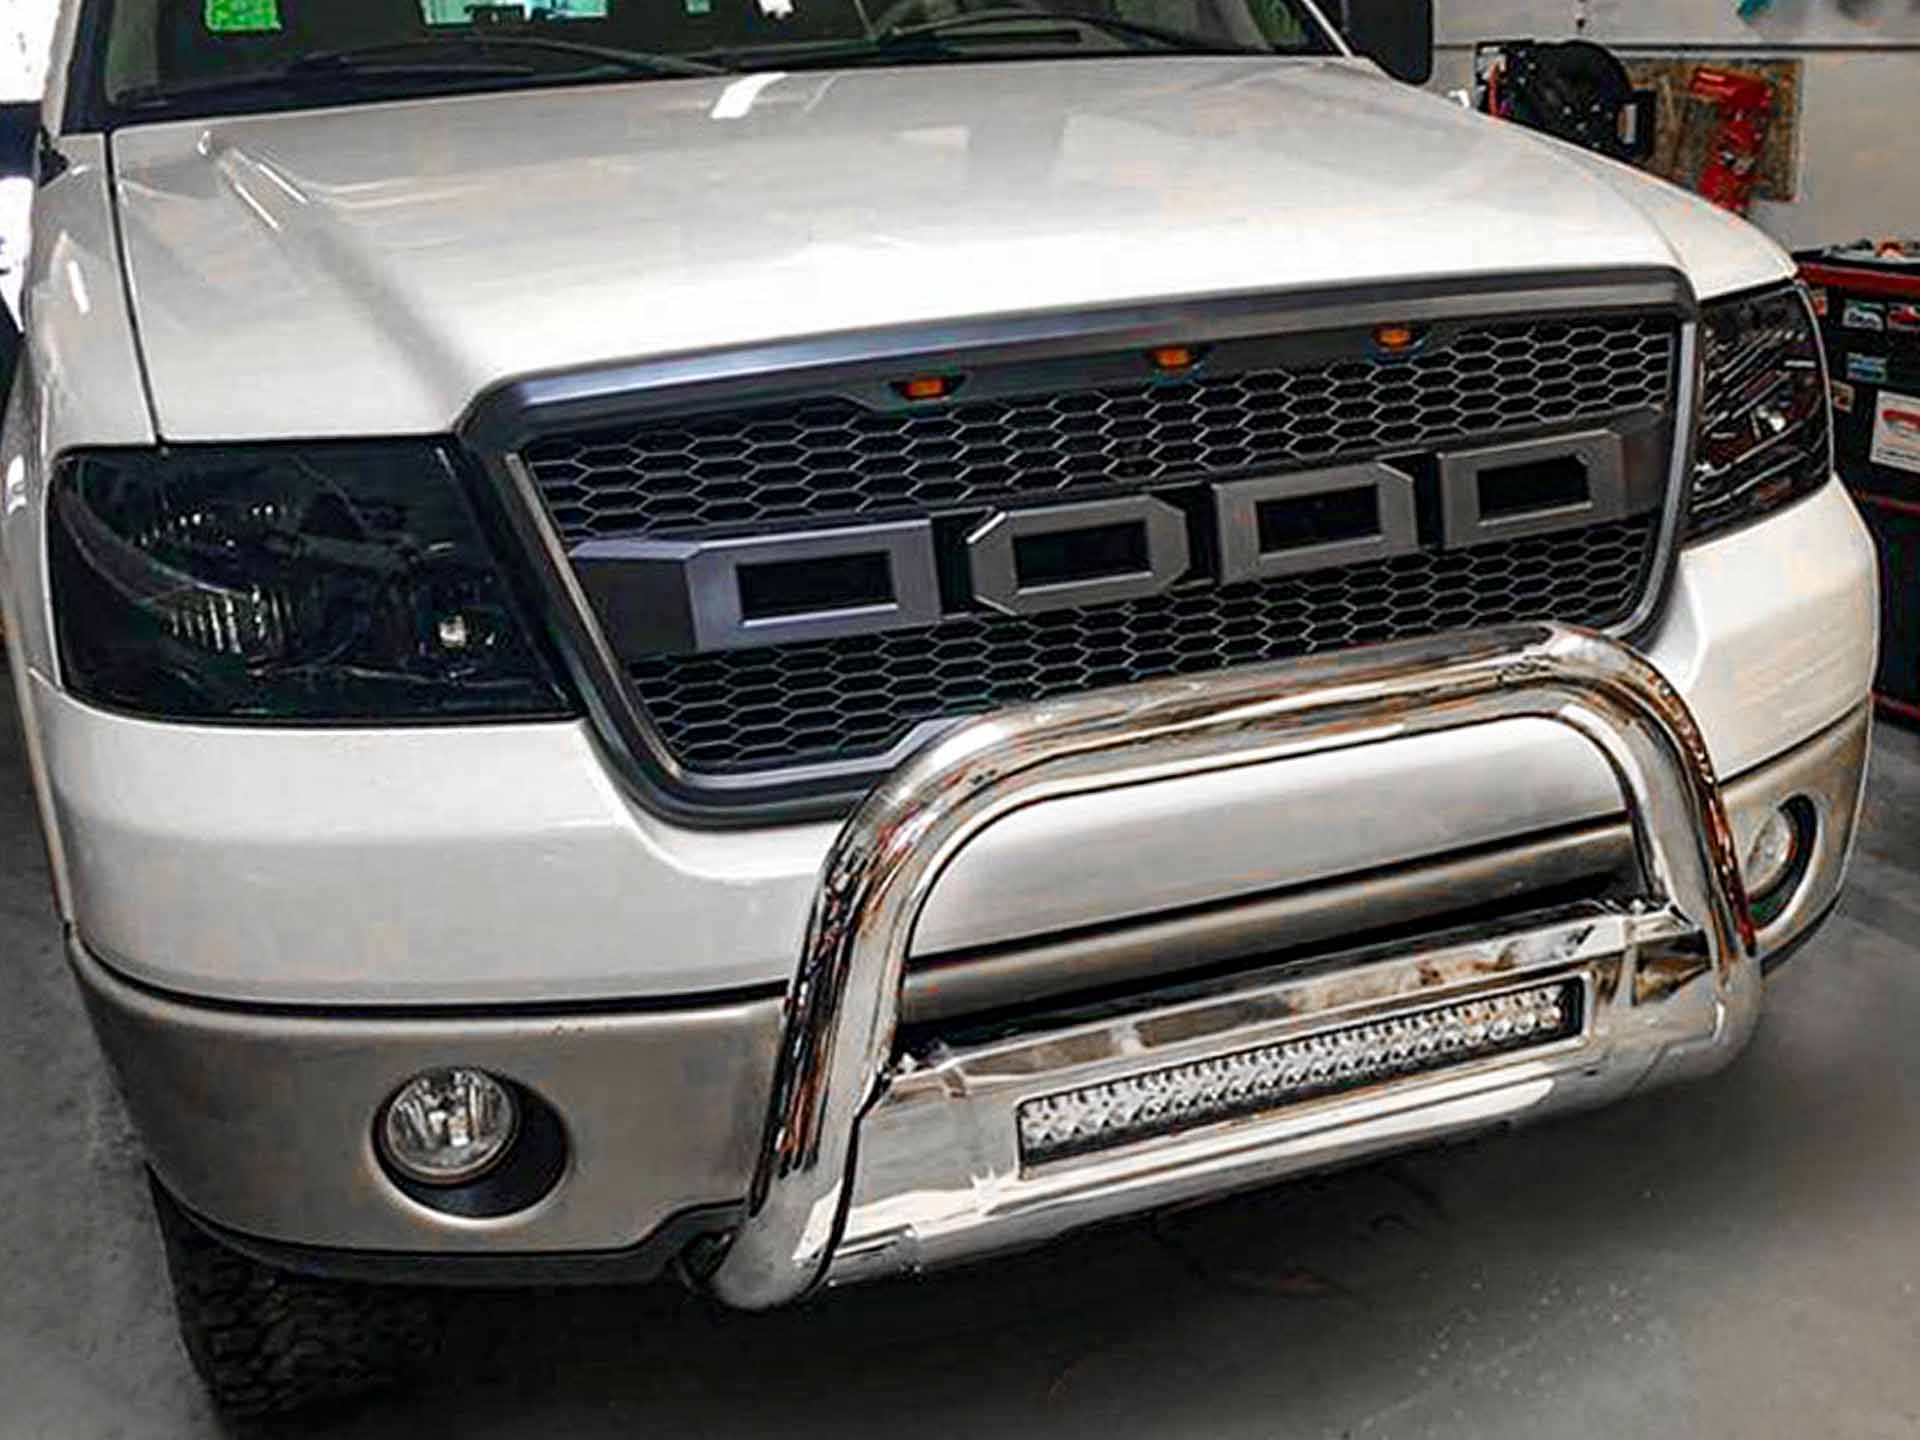 Ford F150 white grill light tint after